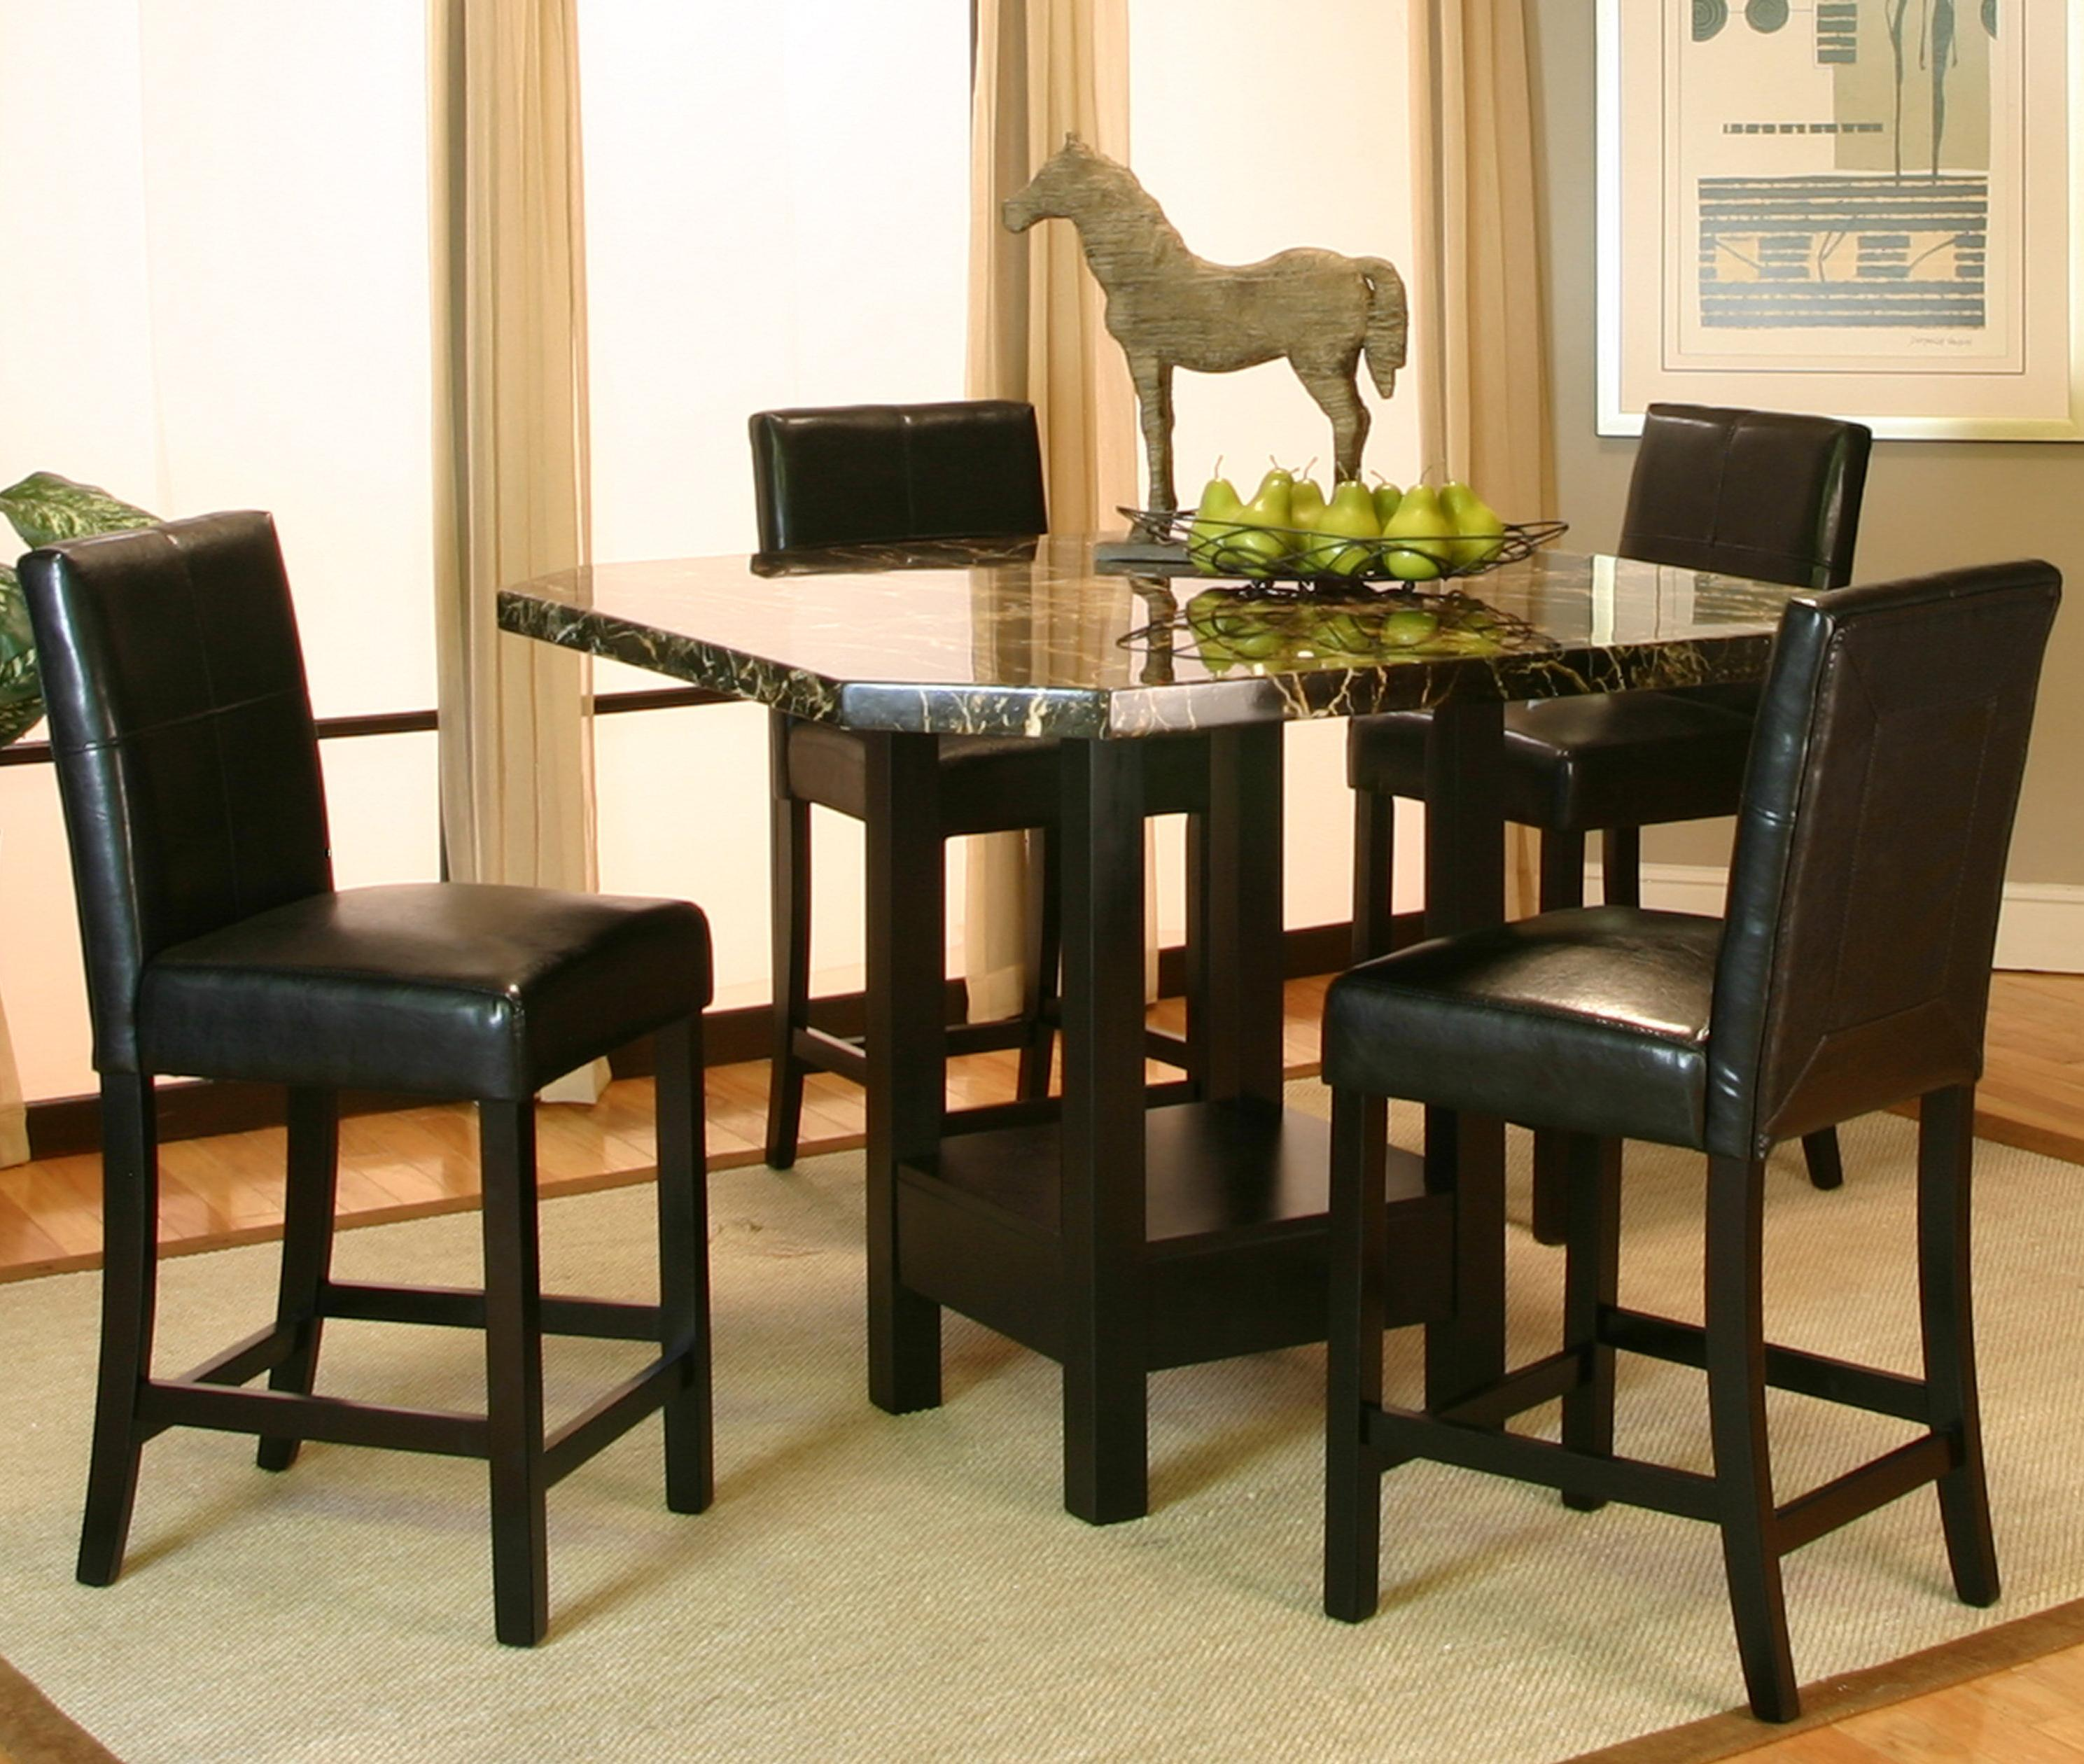 5 Piece Pub Table and Stool Set & 5 Piece Pub Table and Stool Set by Cramco Inc | Wolf and Gardiner ...